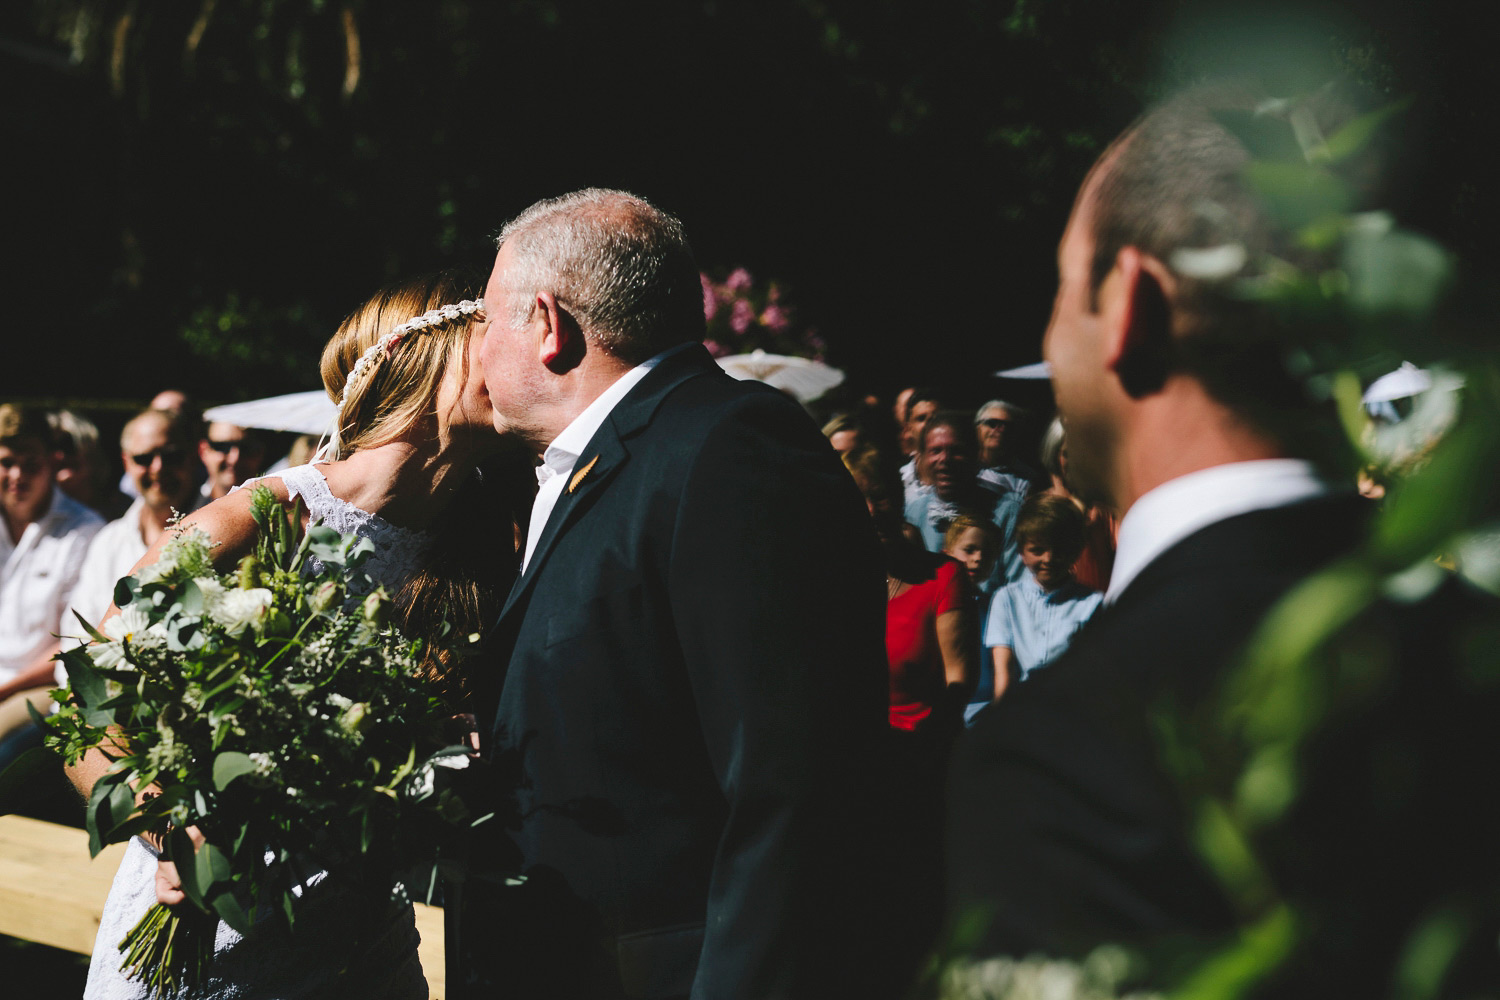 cape-town-wedding-photographer-western-cape-constansia-camilla-charlie-ray37.jpg